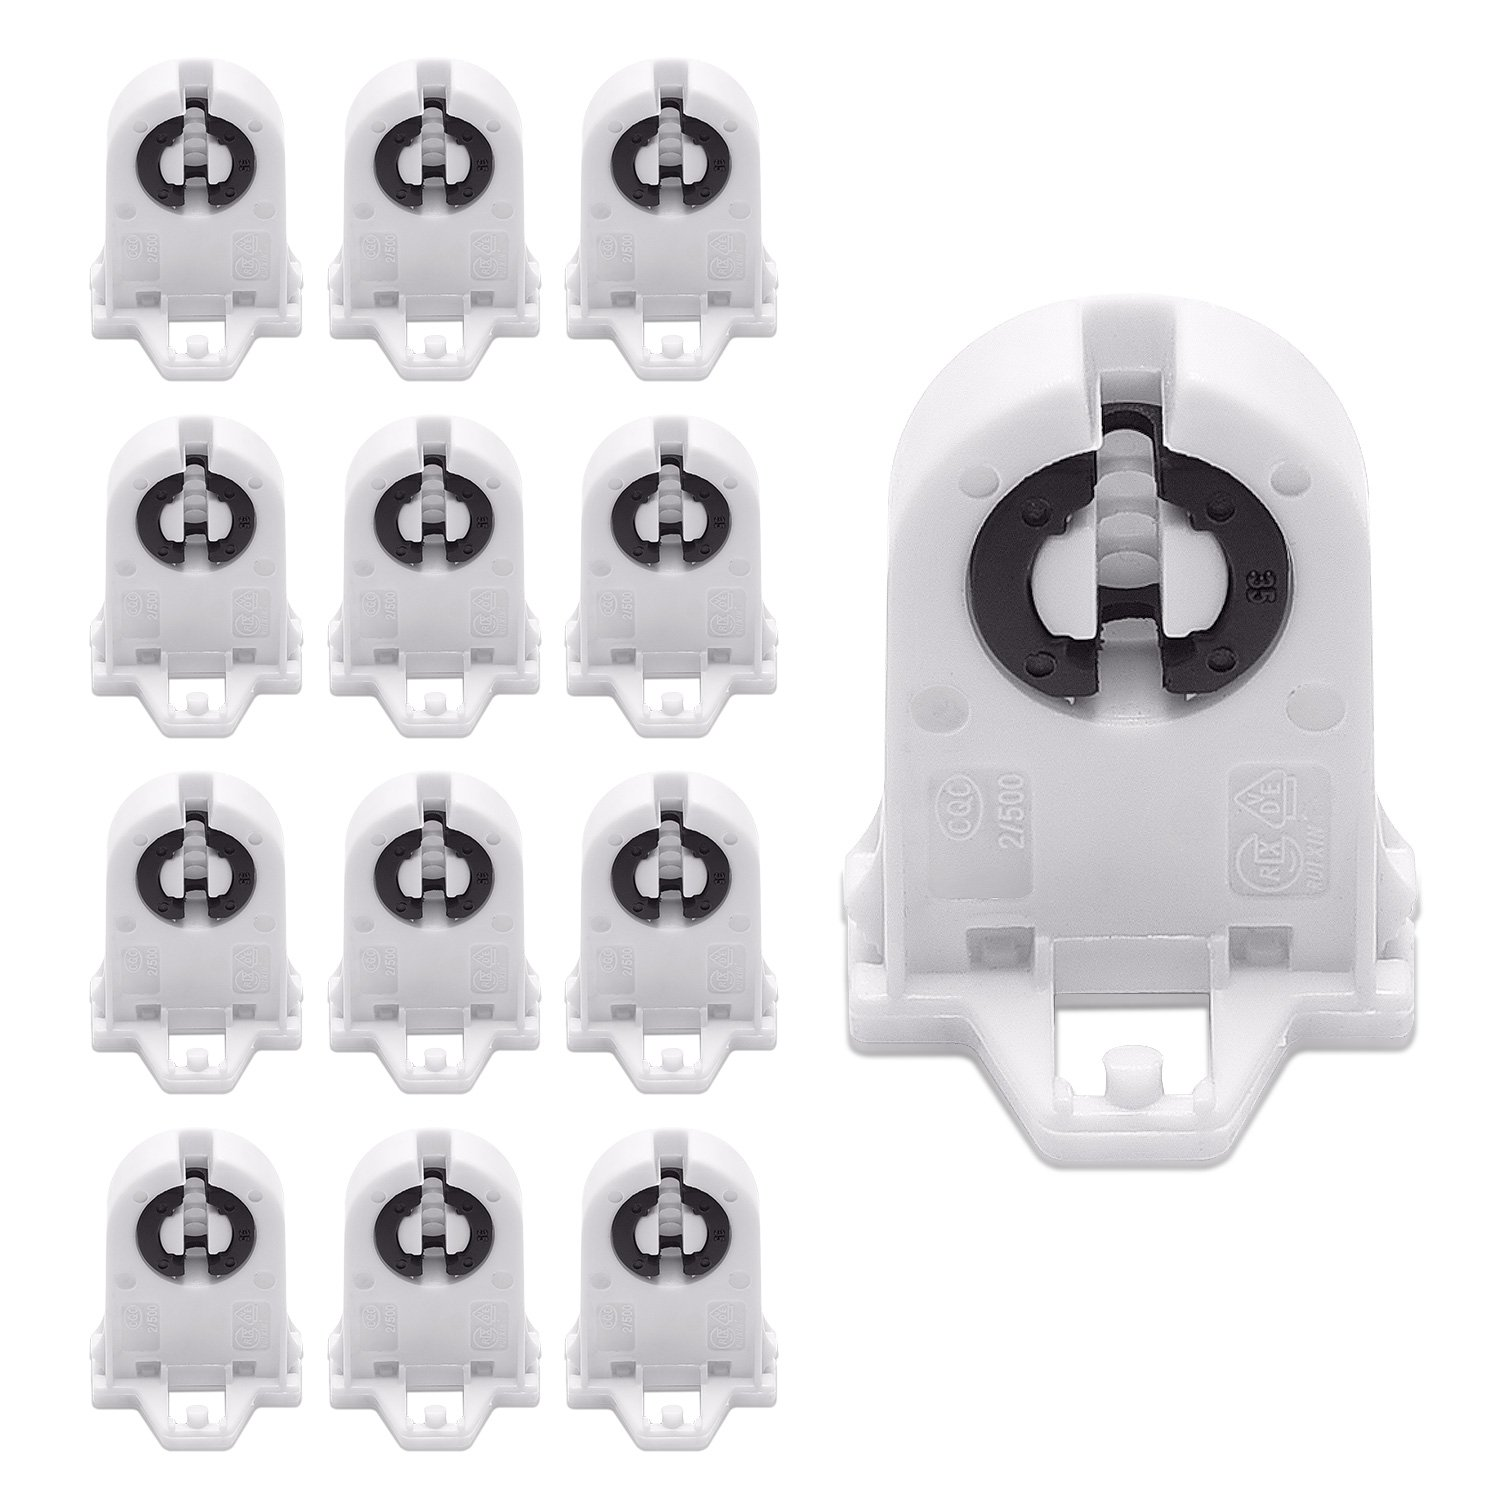 Screw Type T8 Lamp Holder JACKYLED 20-pack UL Non-shunted Light Socket For LED Fluorescent Tube Replacements